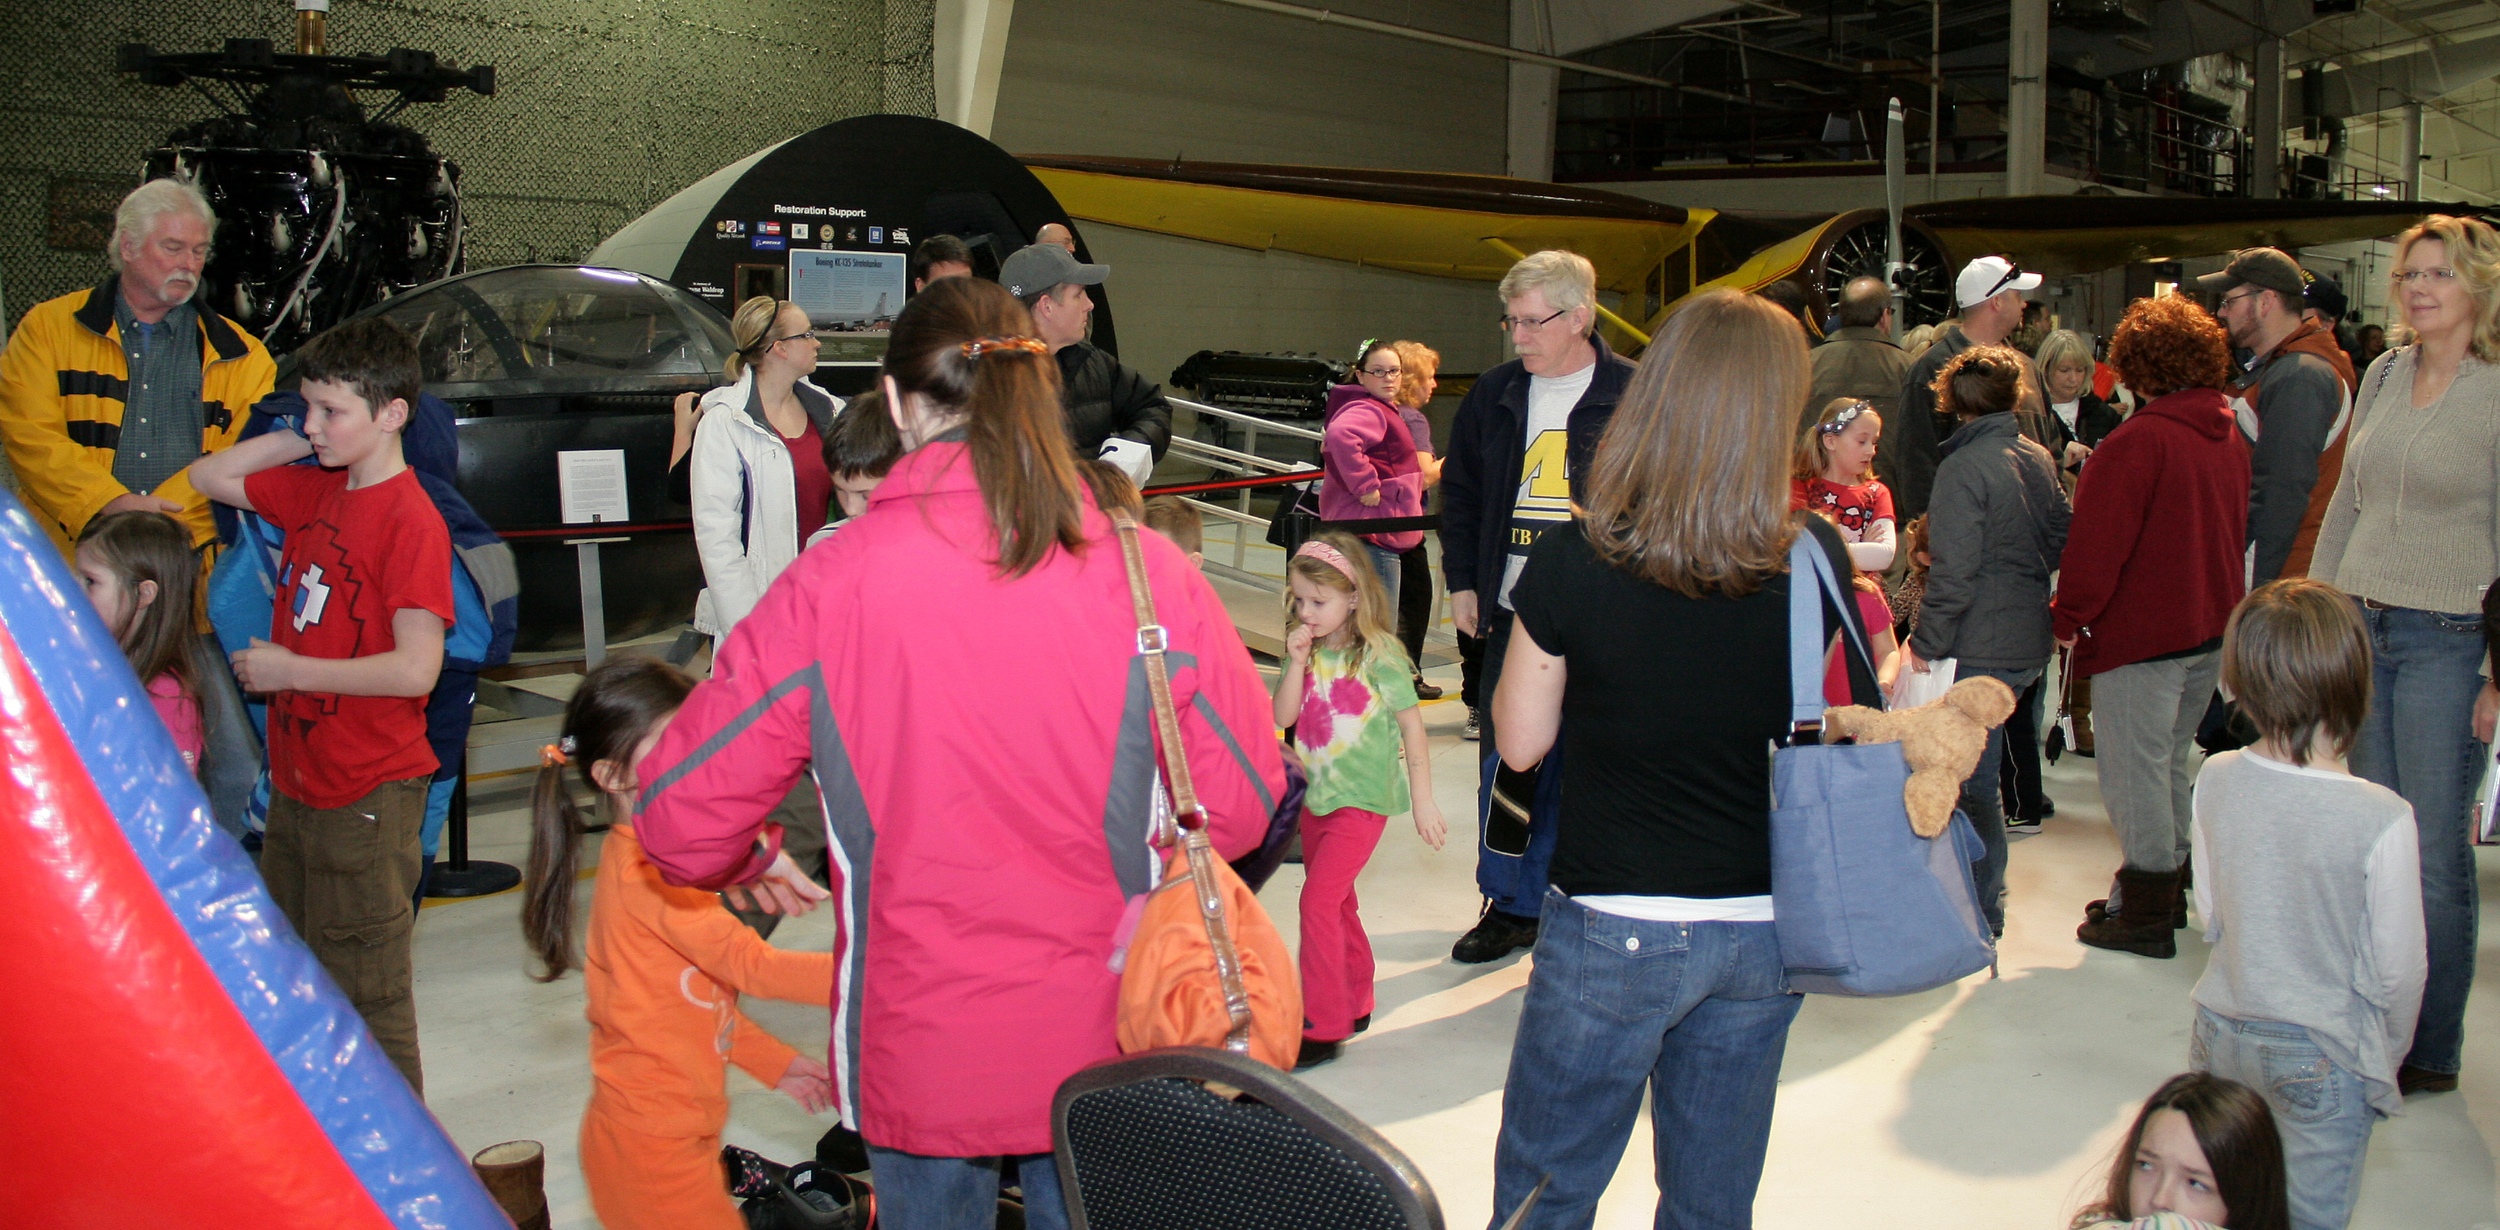 The Yankee Air Museum attracts visitors of all ages with educational exhibits and programs celebrating science technology and aviation.